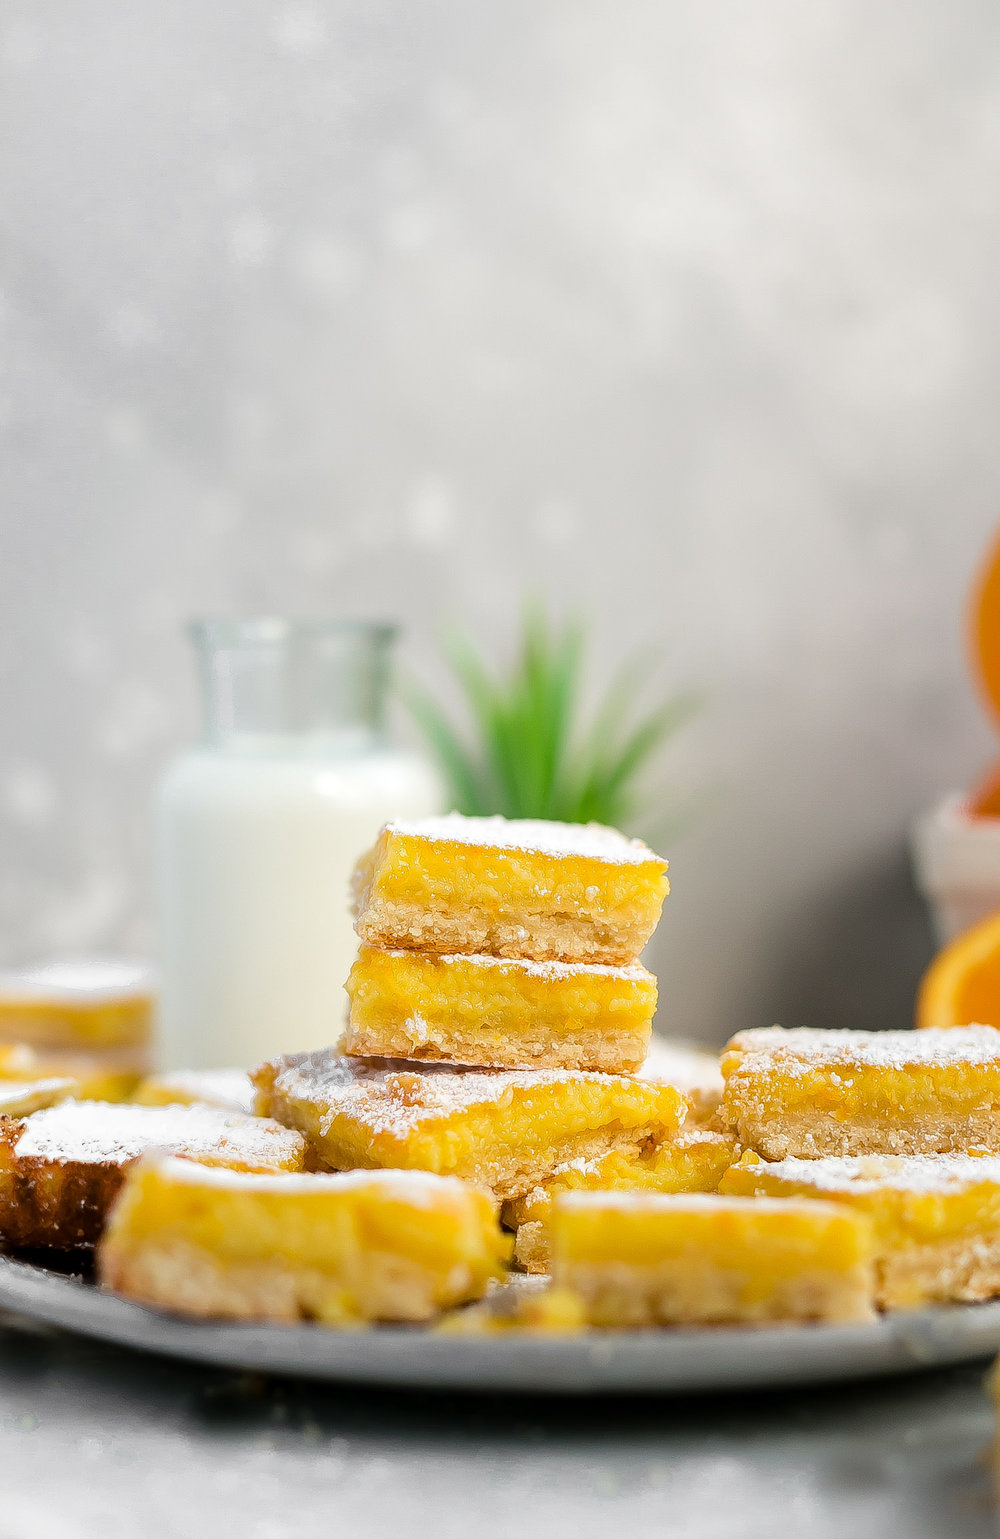 Orange Shortbread Bars: buttery, tender, flaky shortbread crust topped with a silky, rich, tart and sweet orange curd filling. Citrus heaven! | TrufflesandTrends.com